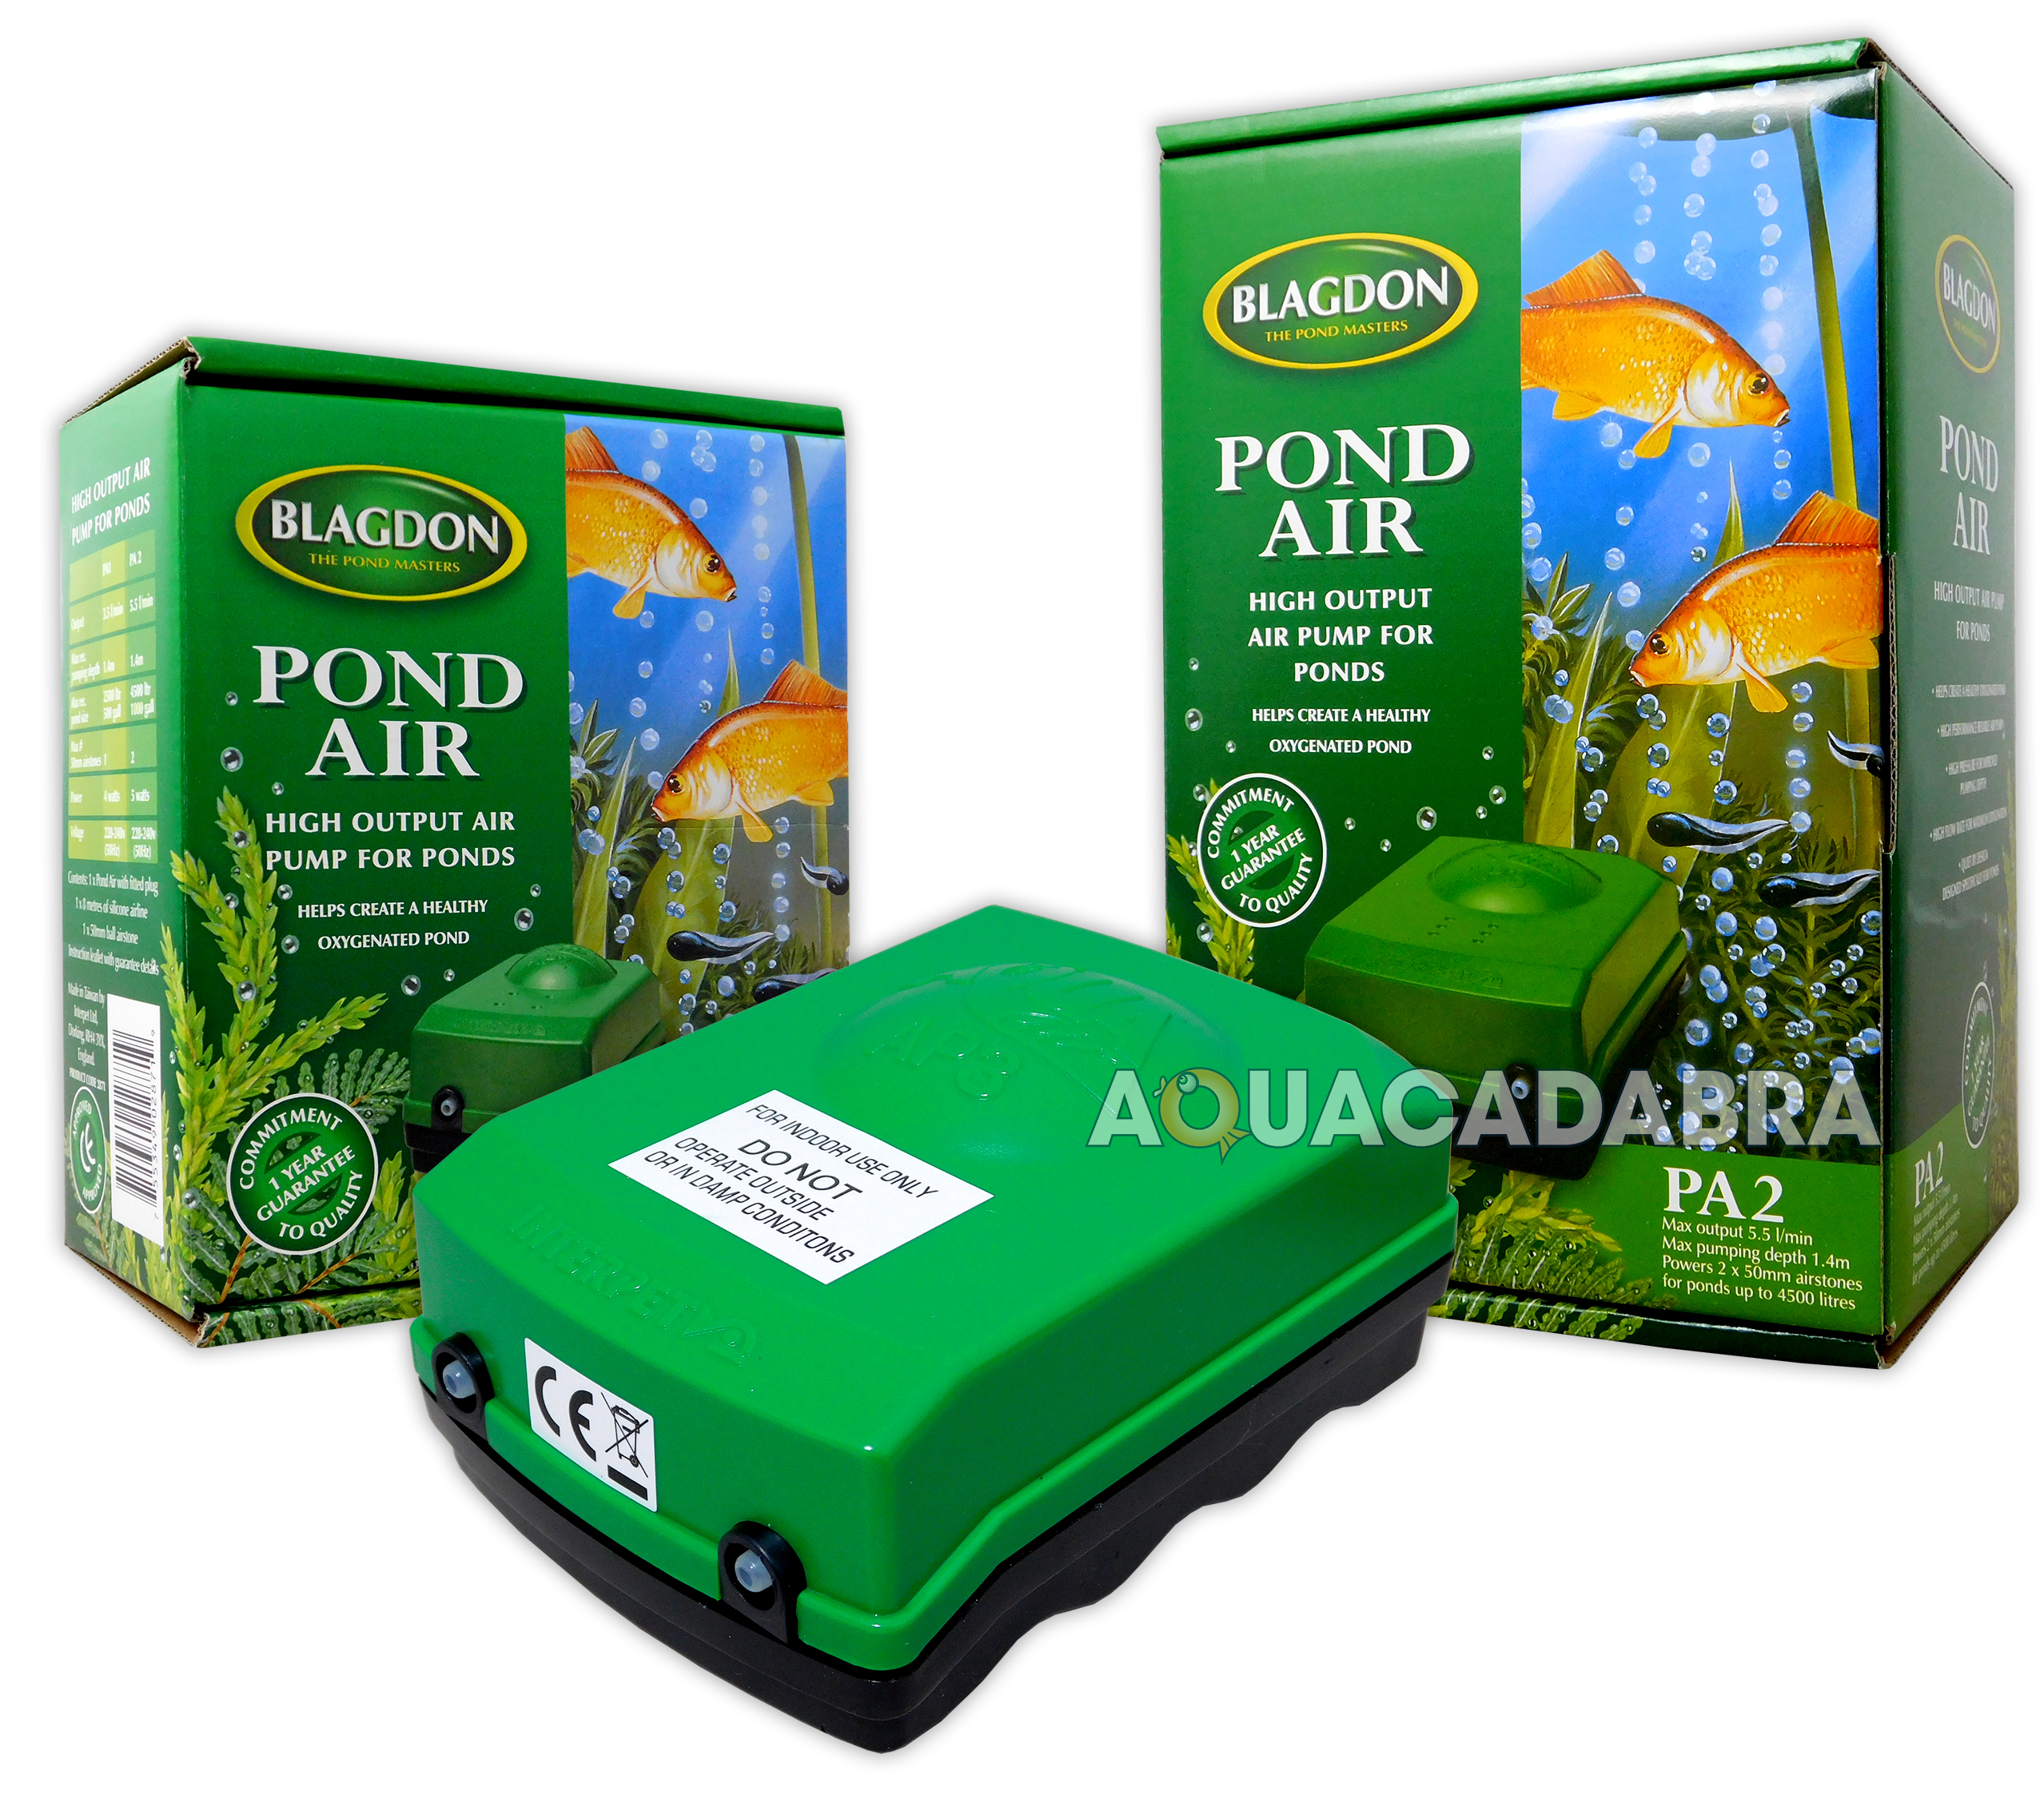 Blagdon garden pond air 1 2 air pump airline stone for Garden pond air pumps